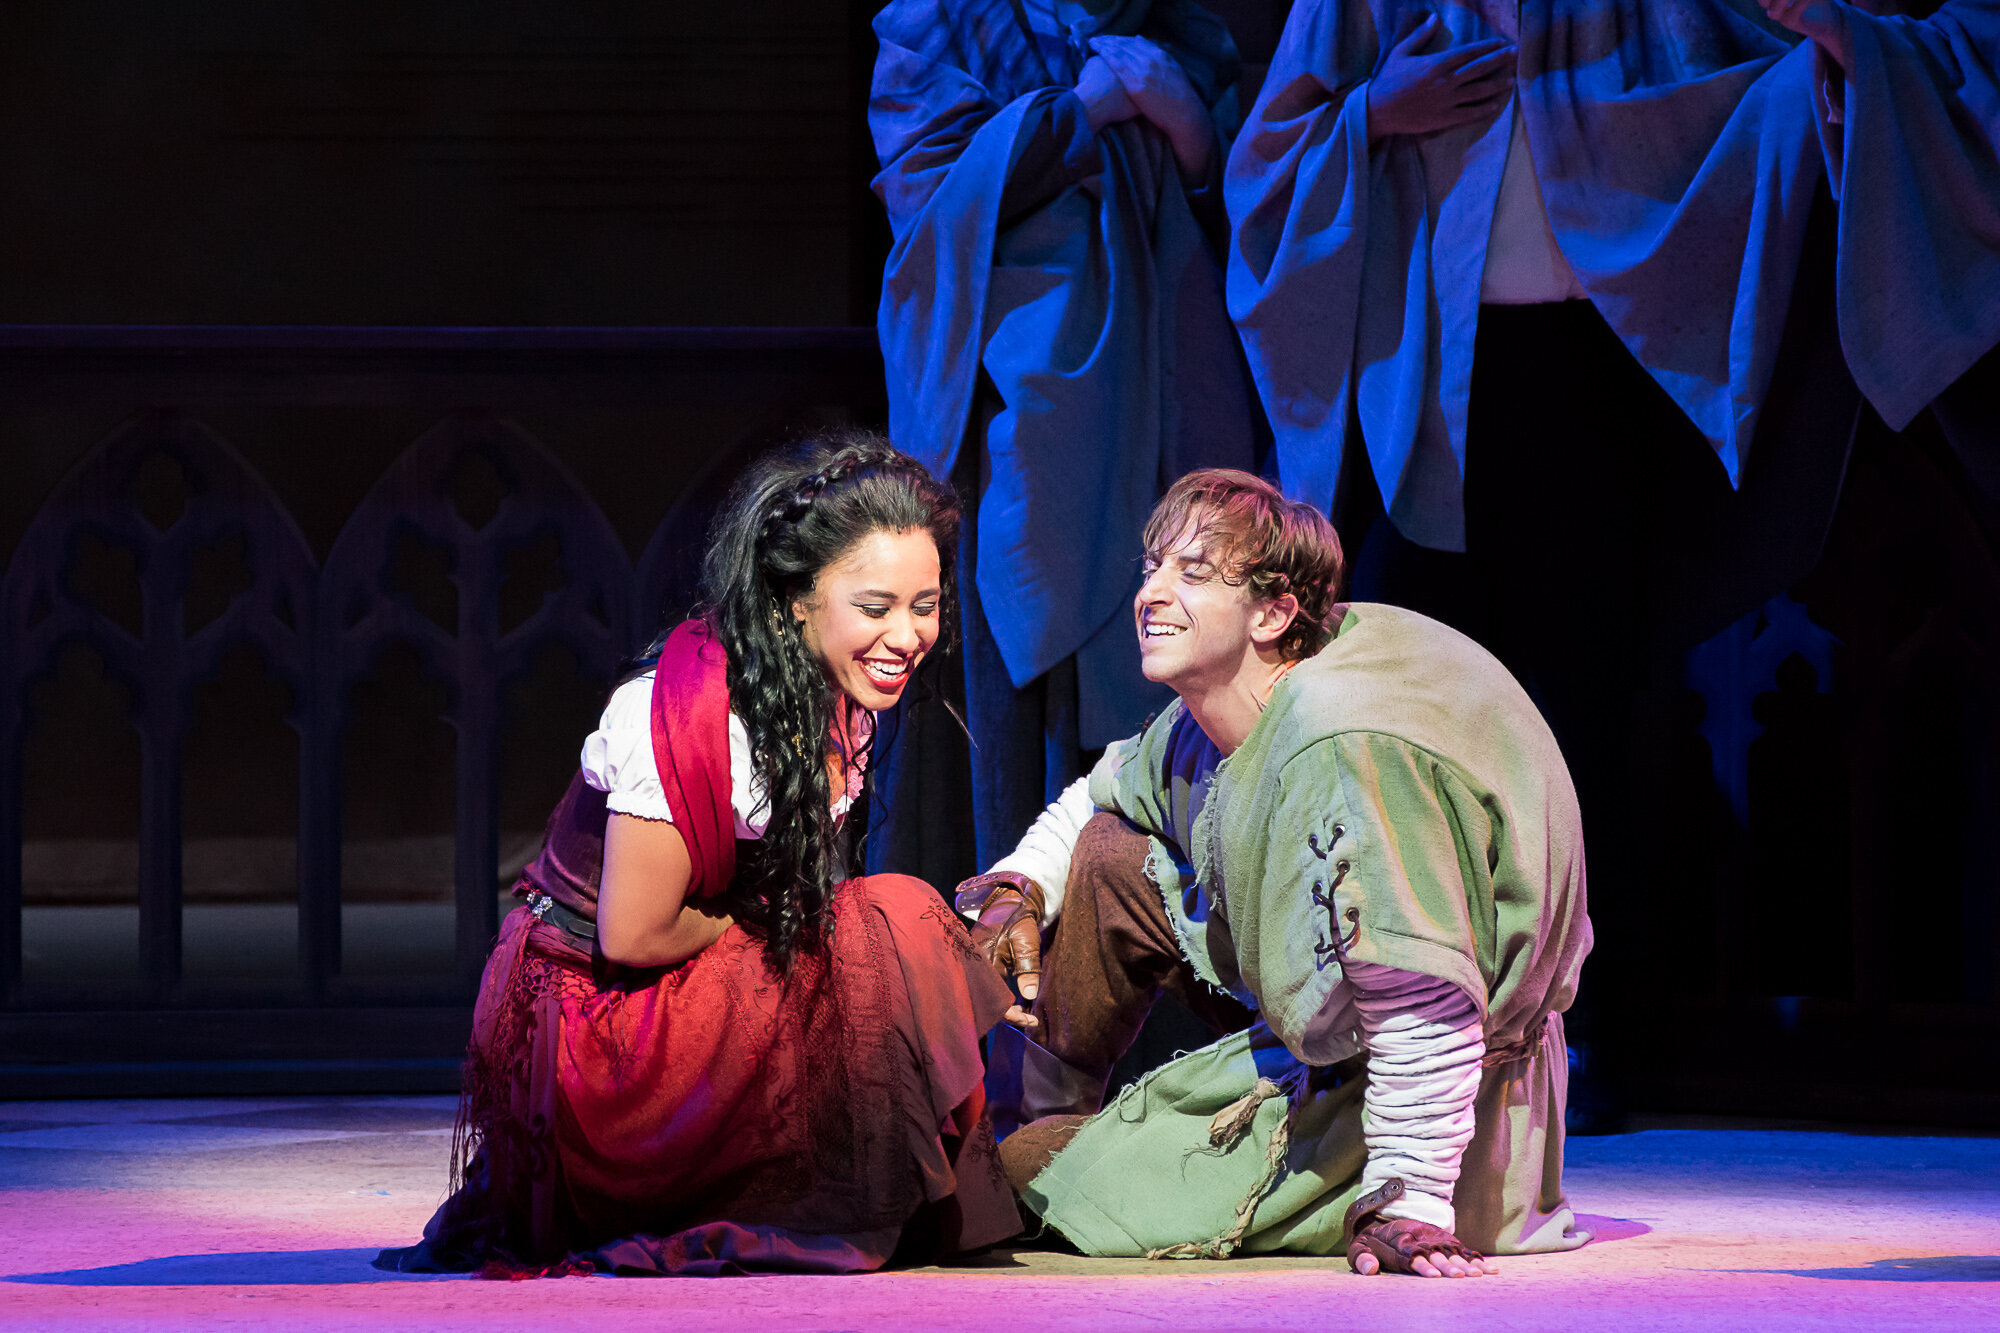 Esmerelda's Dance Skirt(Dyework) and Quasimodo's Tunic(dyework/painting)- The Hunchback of Notre Dame -Music Theatre Wichita 2017  Costume Design by George T Mitchell. All other designs by the summer staff of MTW. Photos Courtesy of Christopher Clark and Jerry Fritchman.